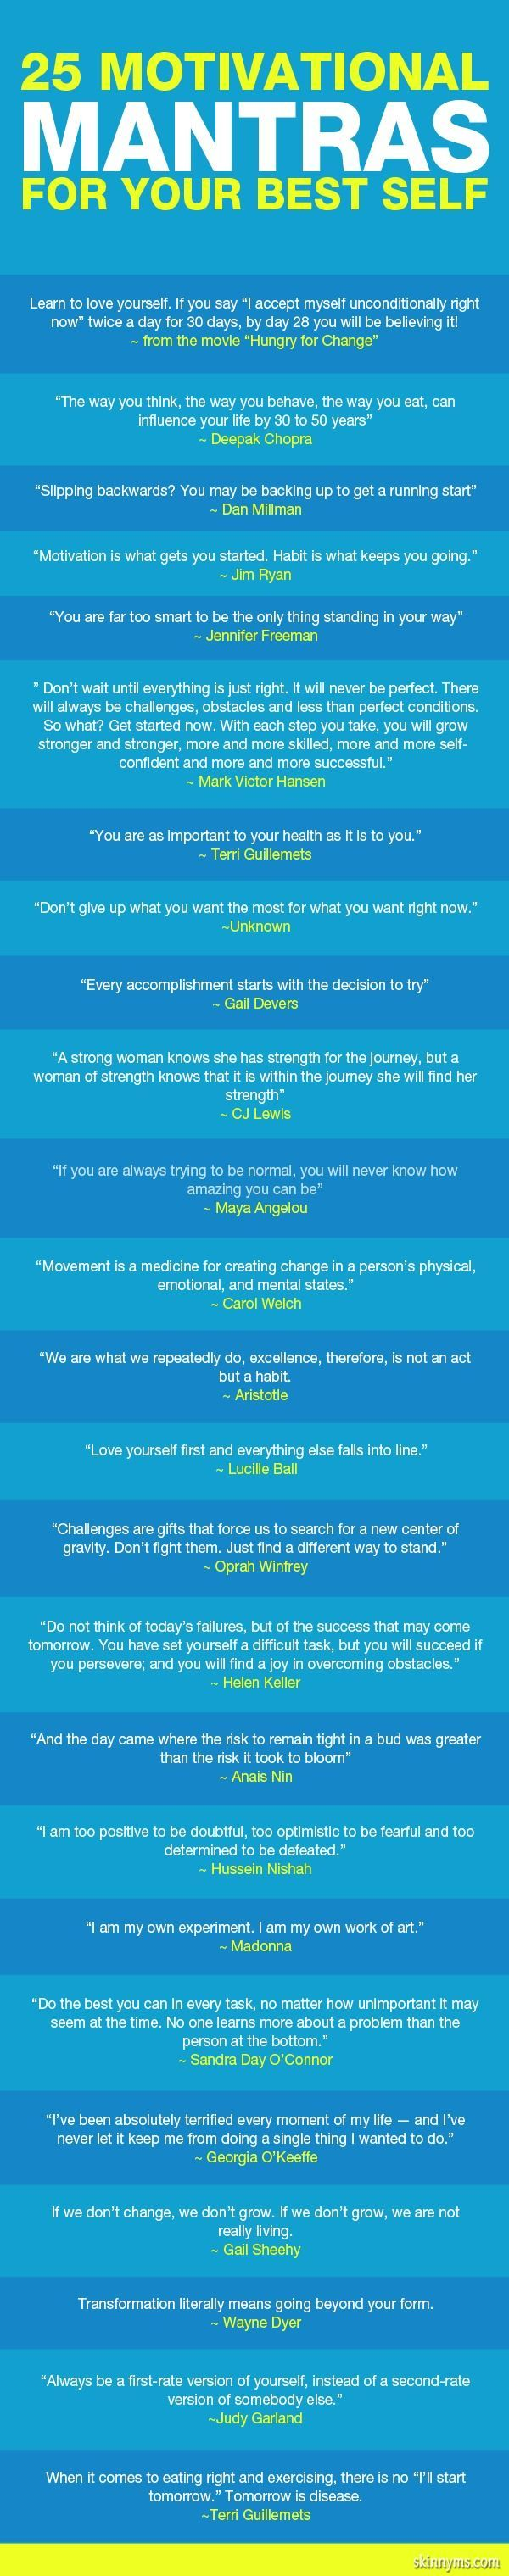 Cleanse your Subconscious Mind with 25 Motivational Mantras for Your Self Confidence! -